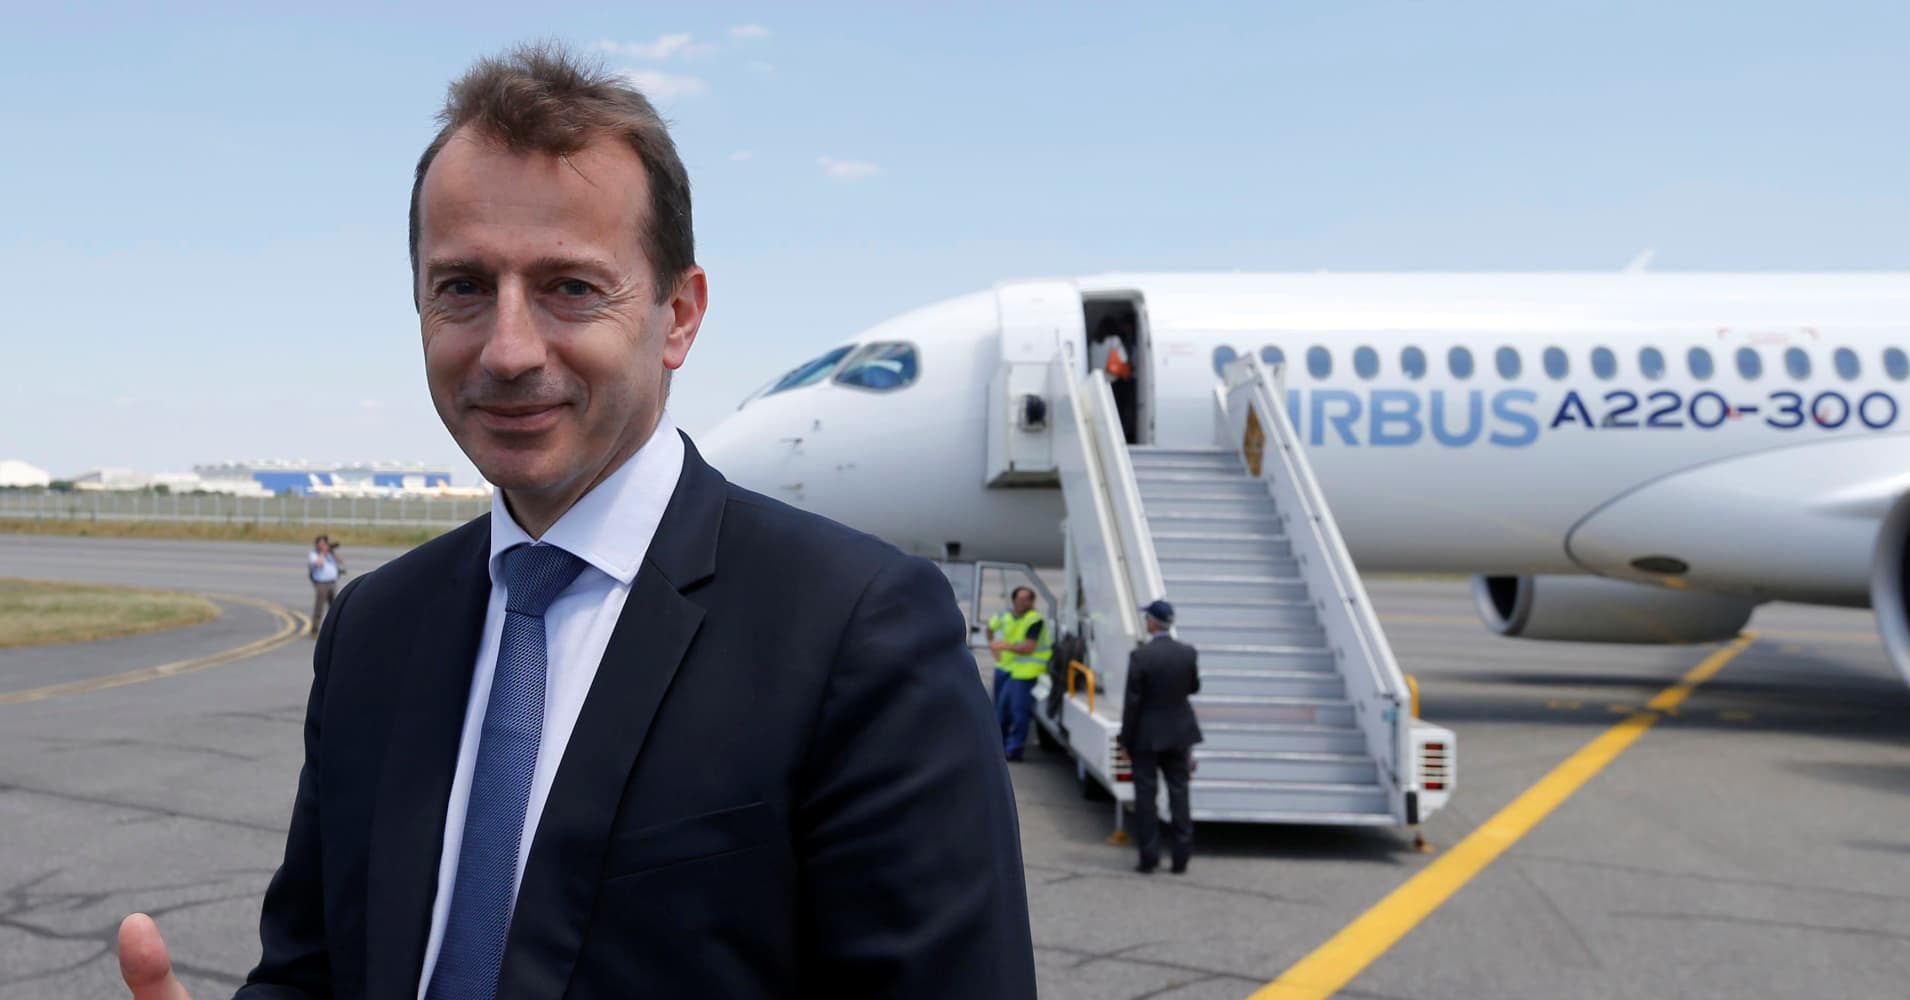 Airbus insider Faury will reportedly be company's next CEO